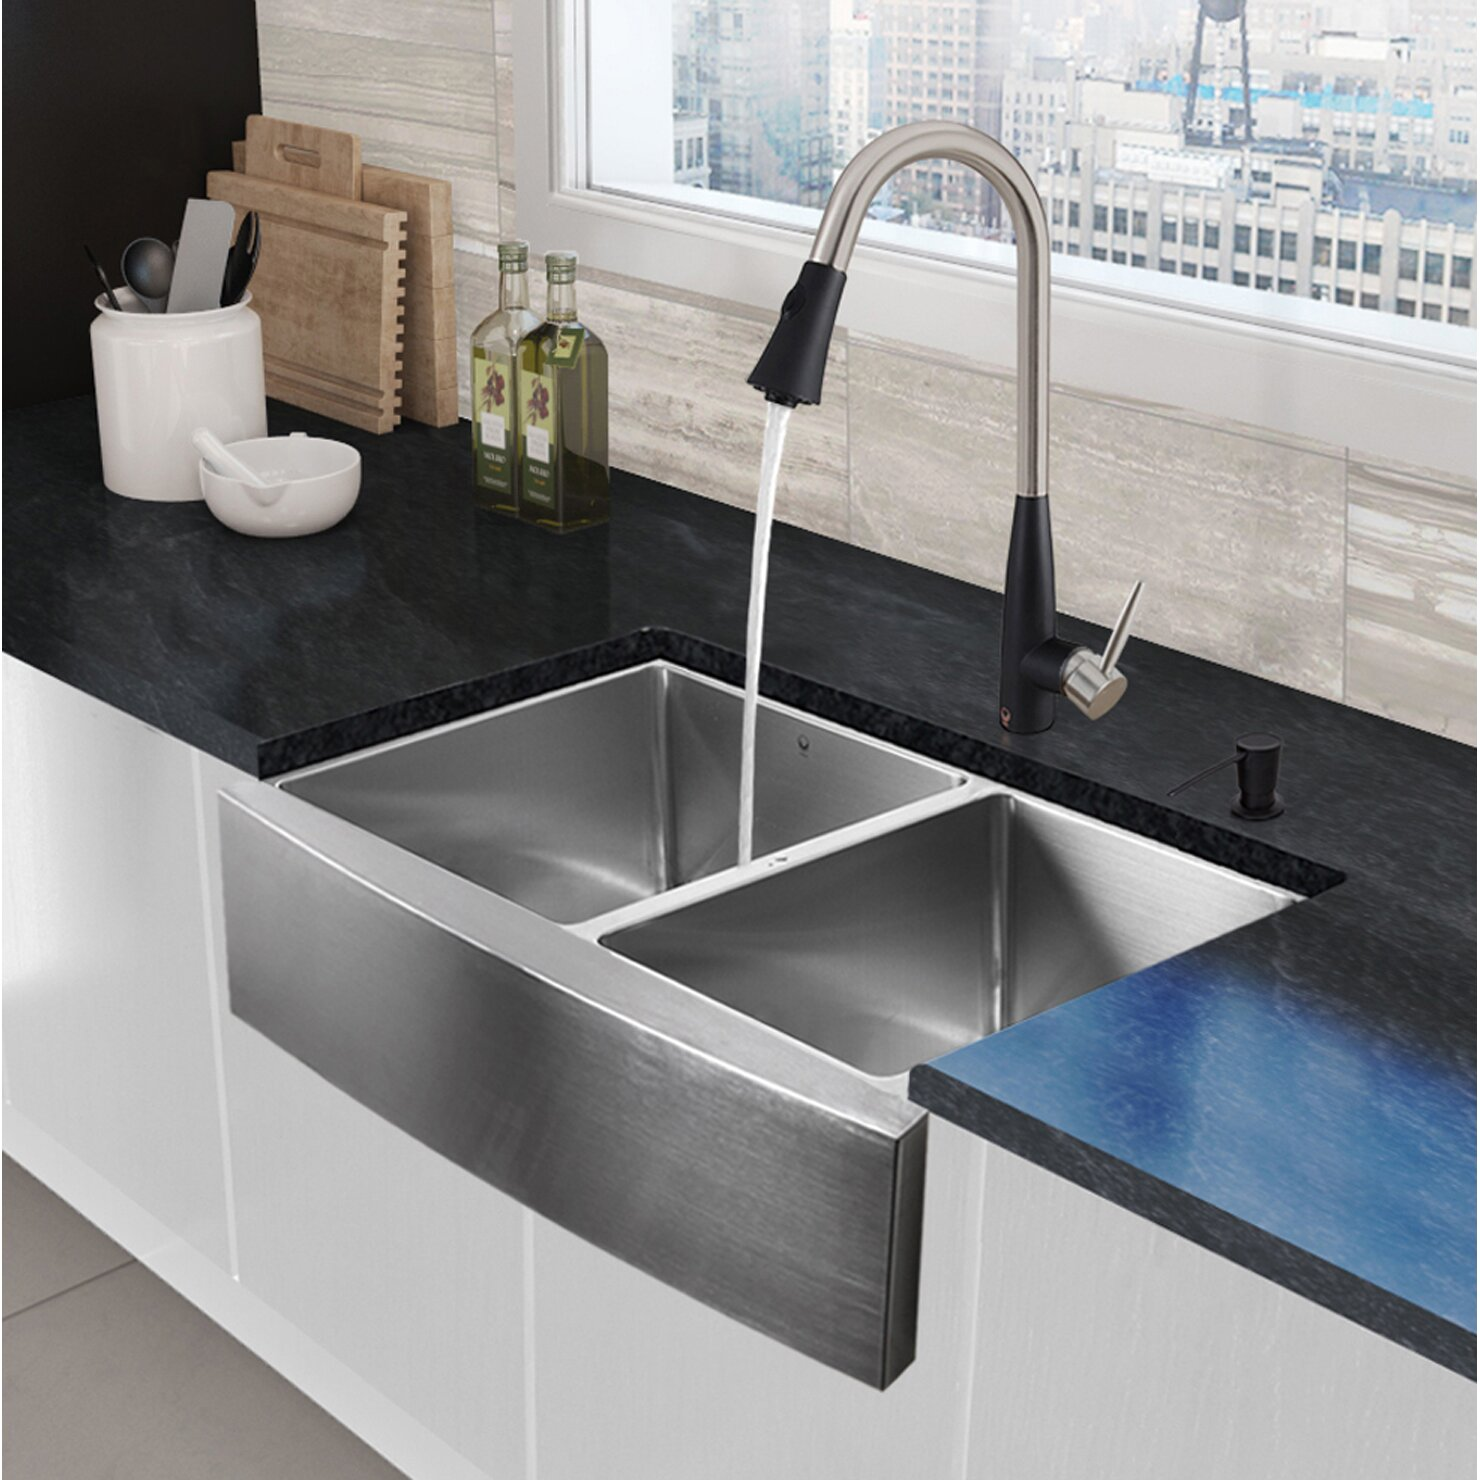 vigo 33 x farmhouse apron 60 40 double bowl 16 gauge stainless steel kitchen sink with. Black Bedroom Furniture Sets. Home Design Ideas